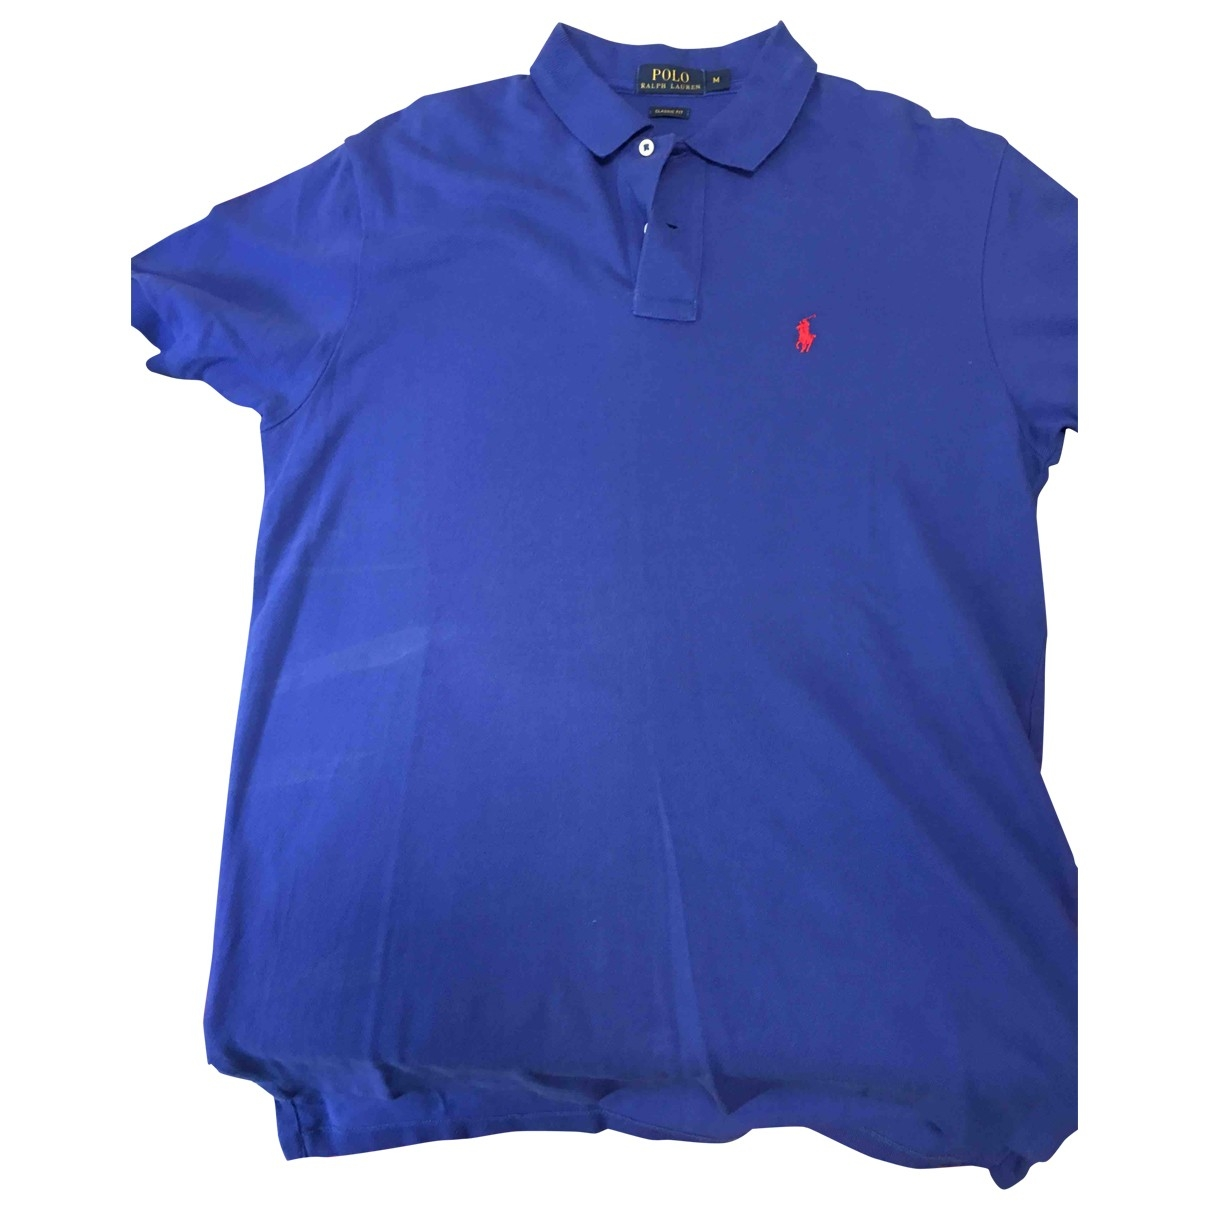 Polo Ralph Lauren \N Blue Cotton T-shirts for Men M International